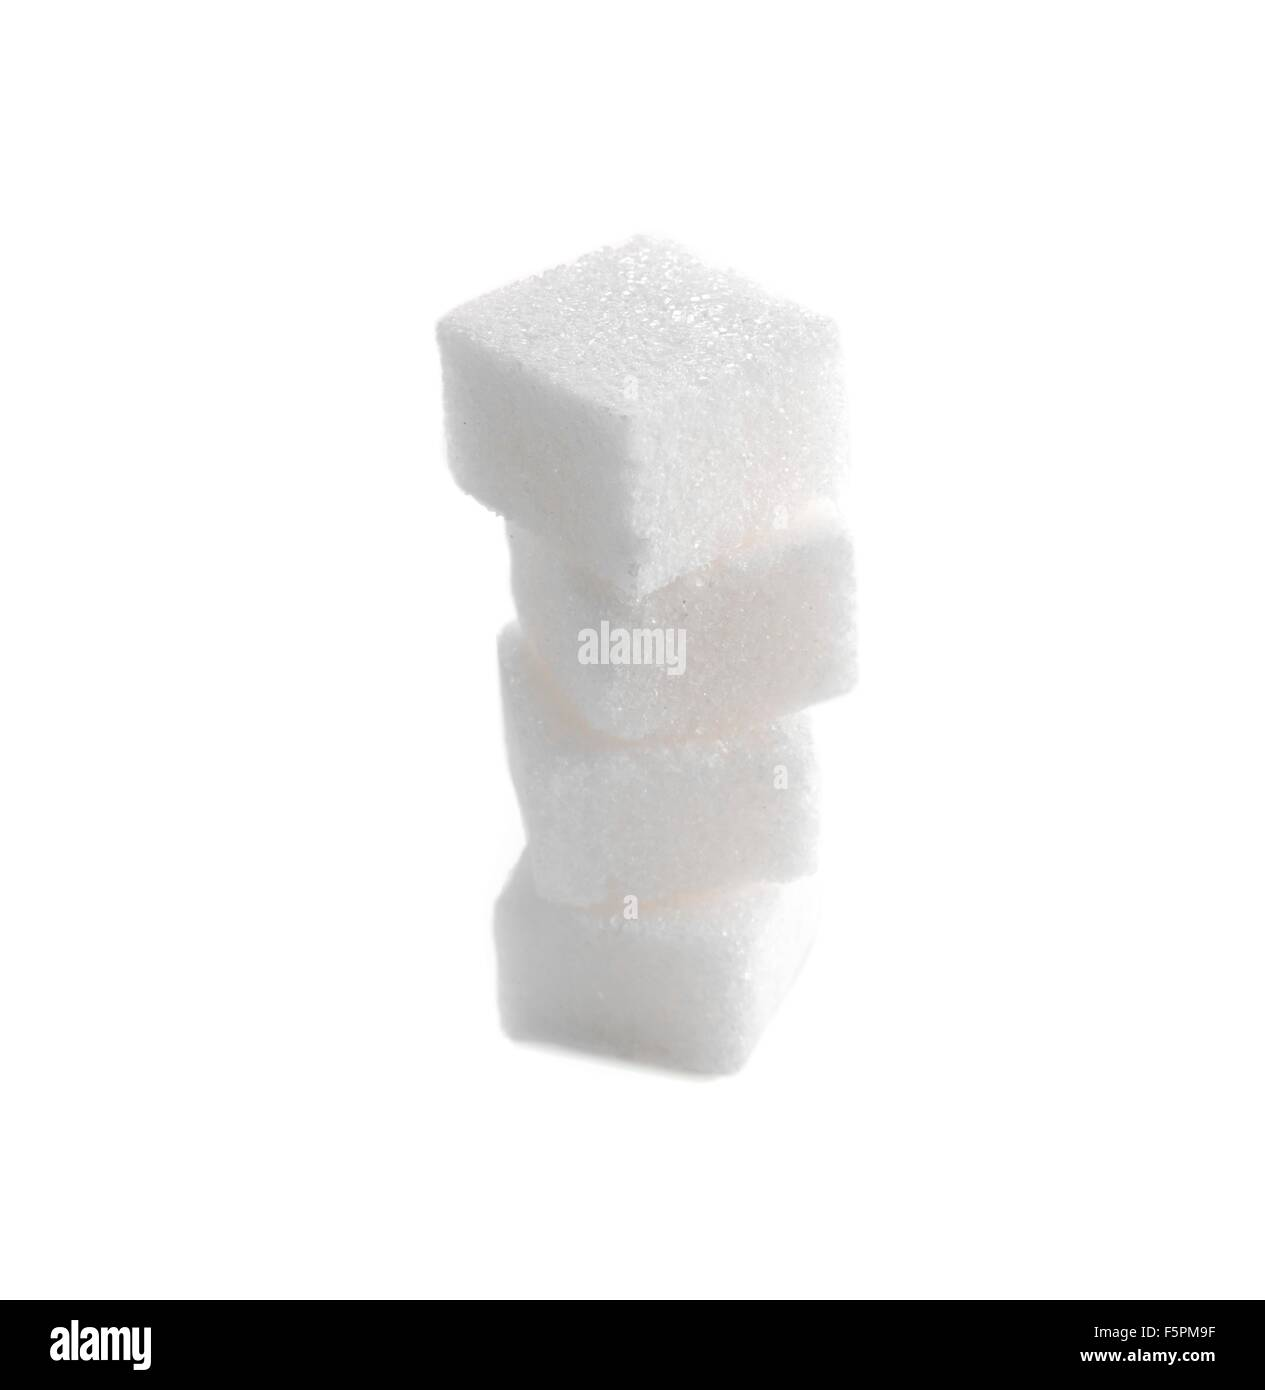 Sugar lumps against a white background. - Stock Image